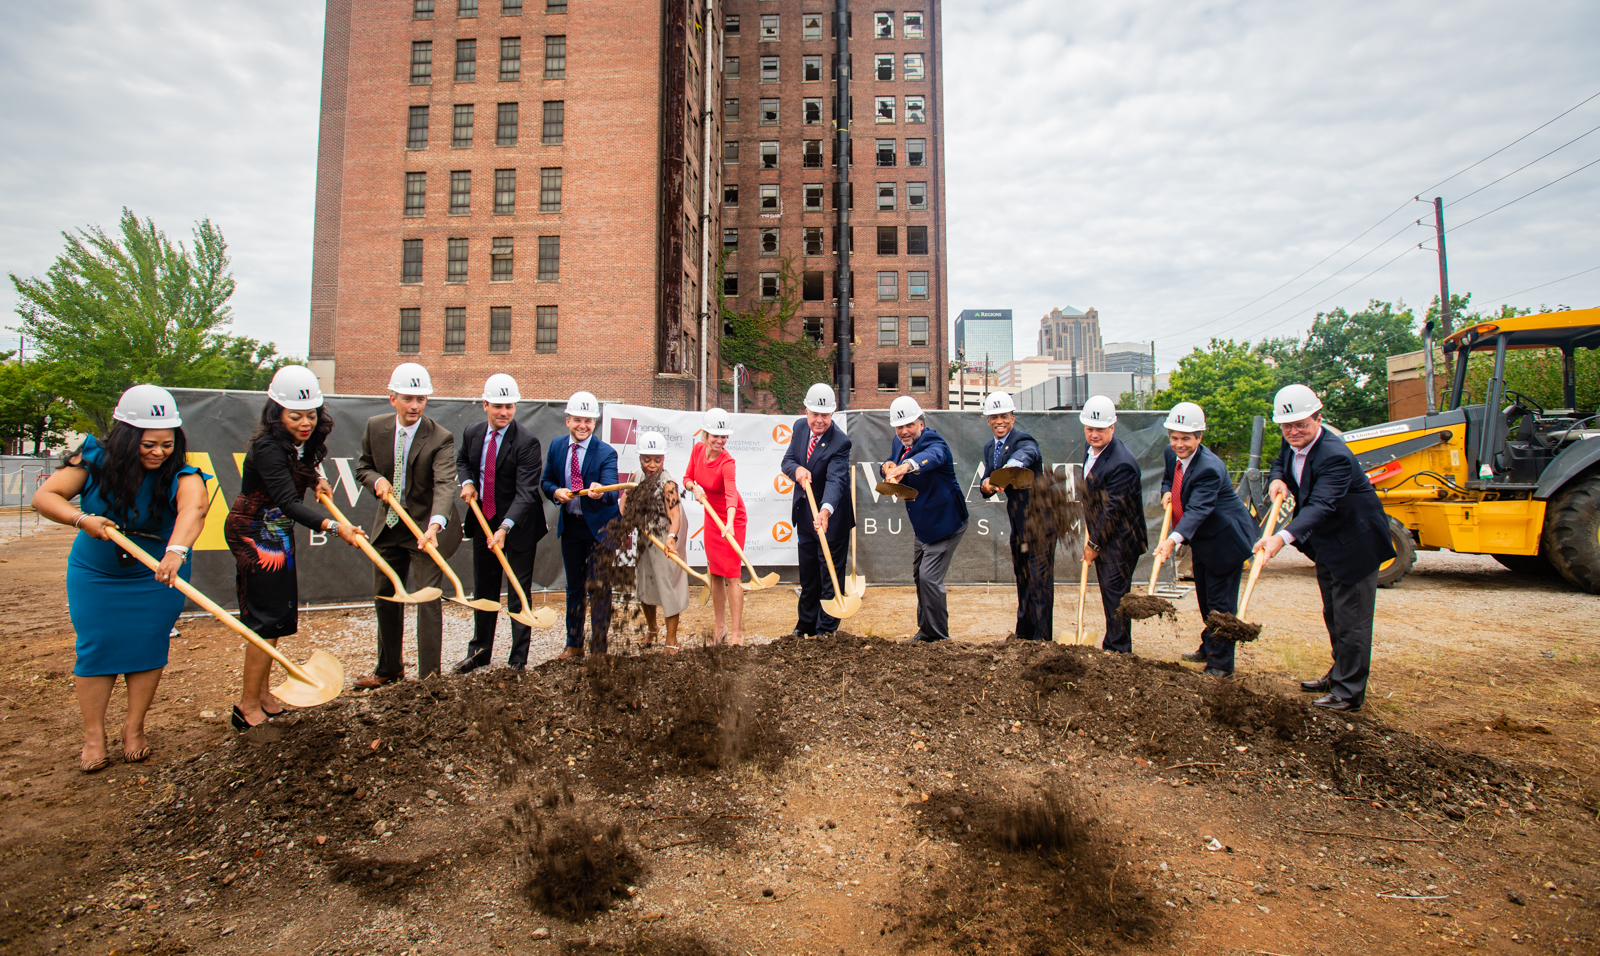 Executive Director Turner participates in an Opportunity Zone groundbreaking